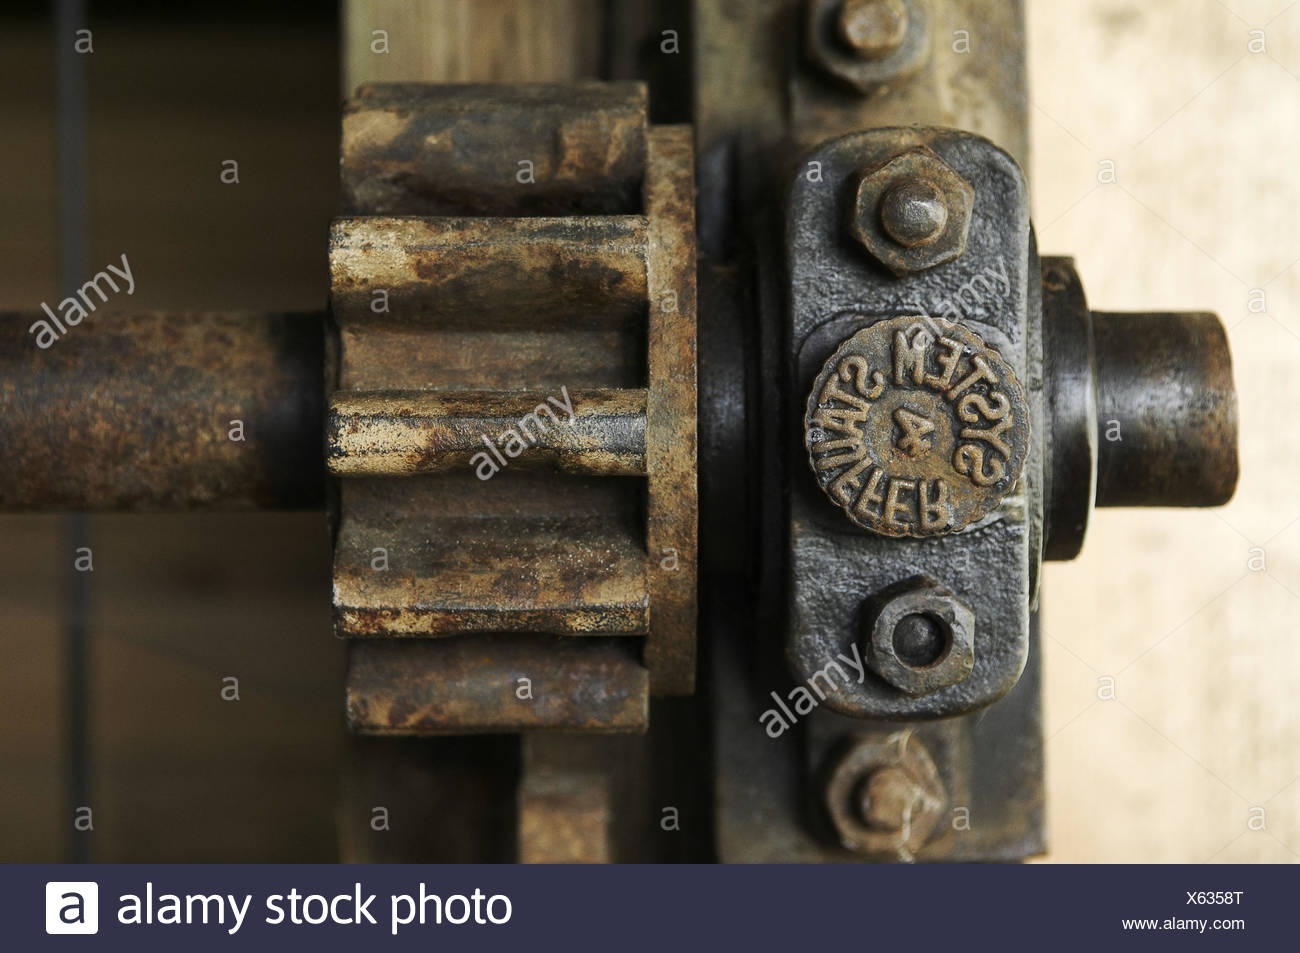 Mill, detail, gearwheel, screwing, nuts, crankshaft, wave, alto, - Stock Image